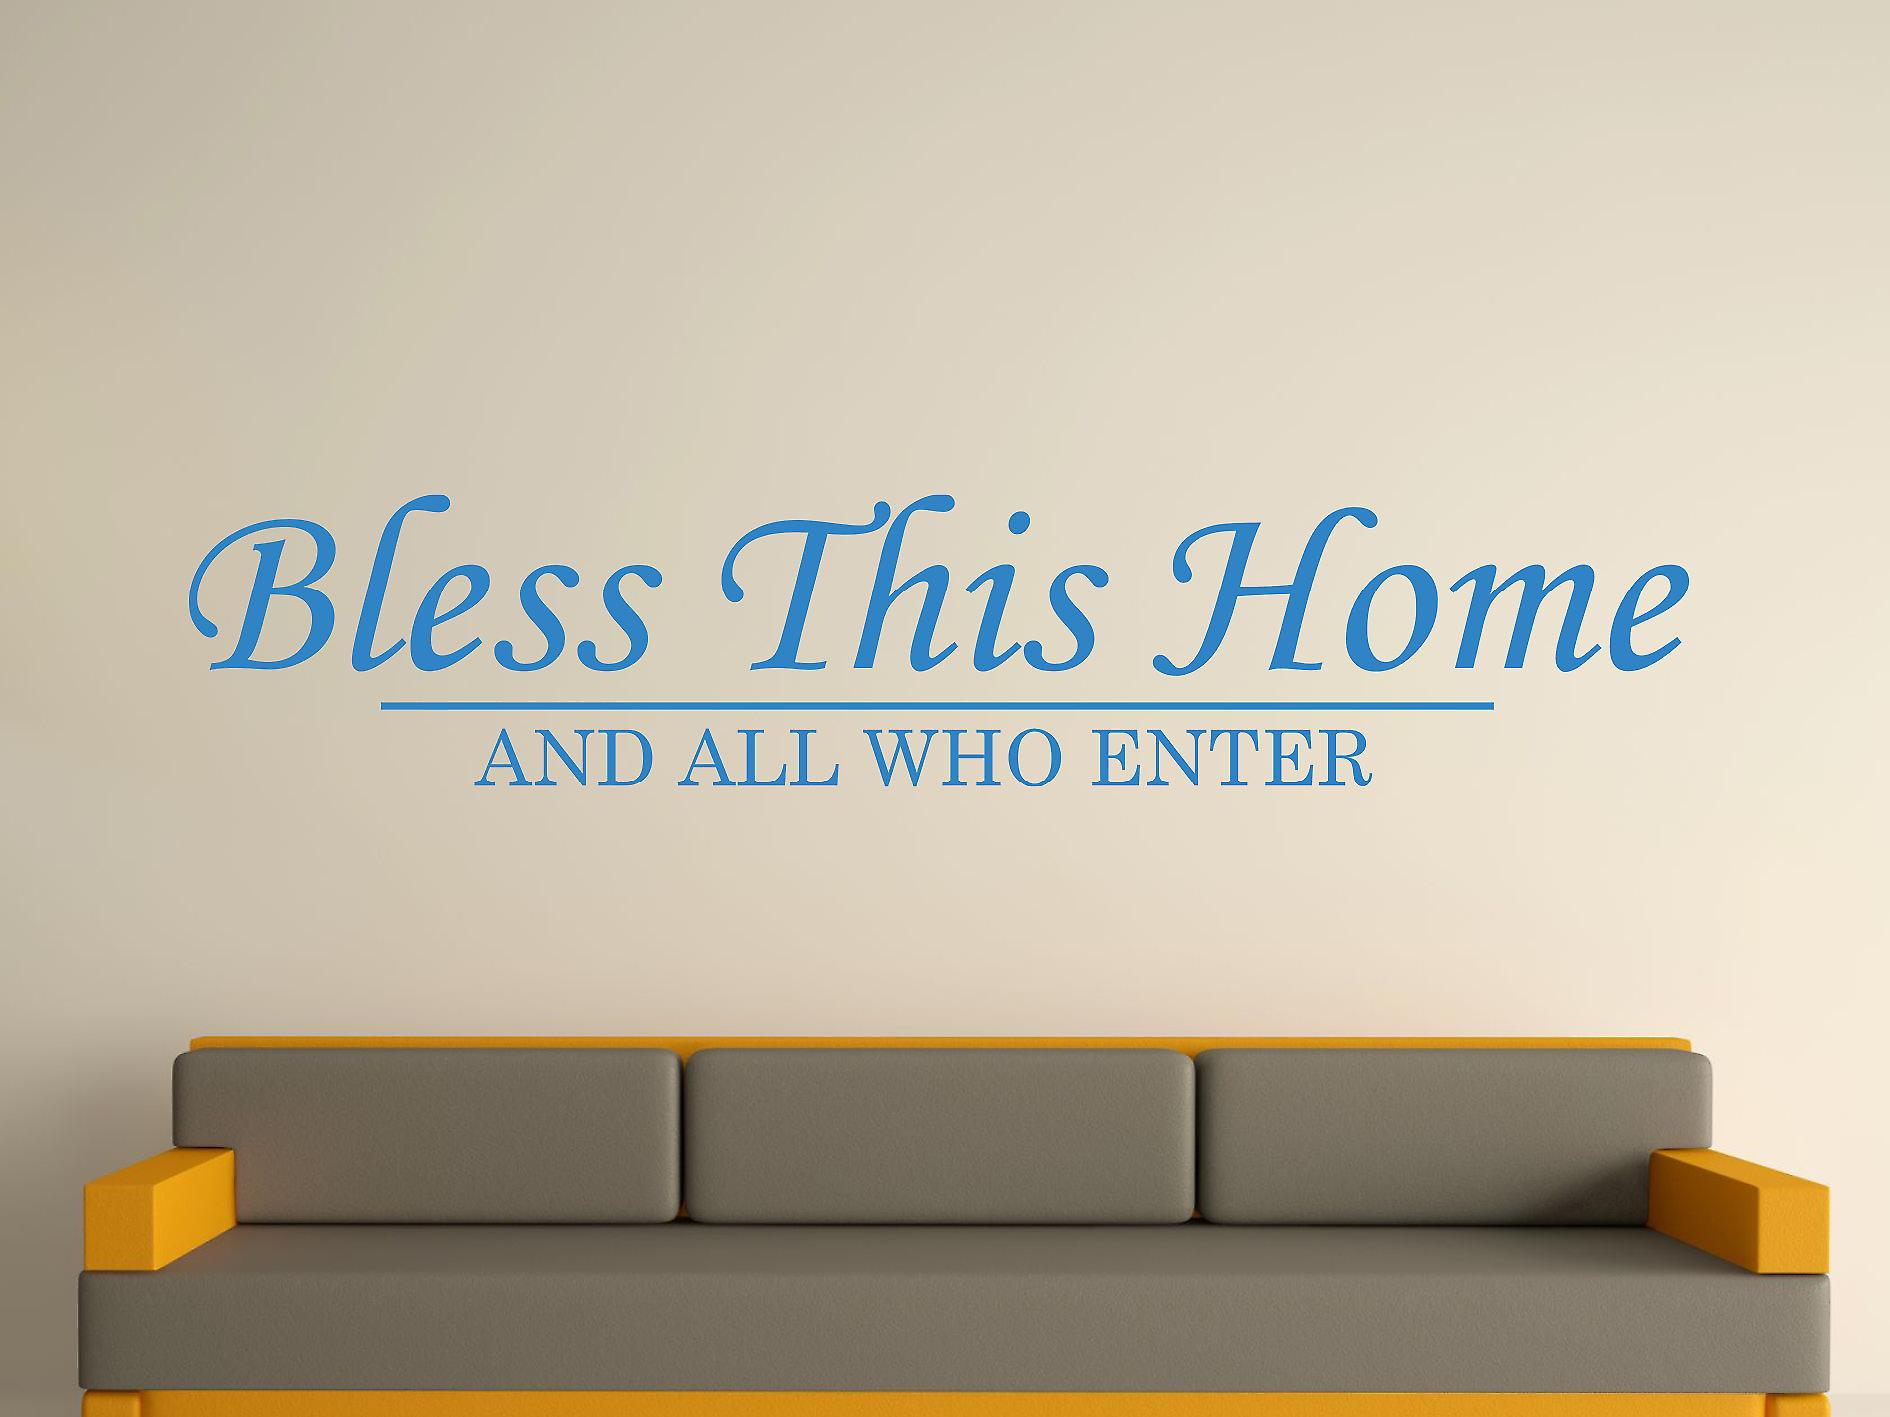 Bless This Home Wall Art Sticker - Olympic Blue